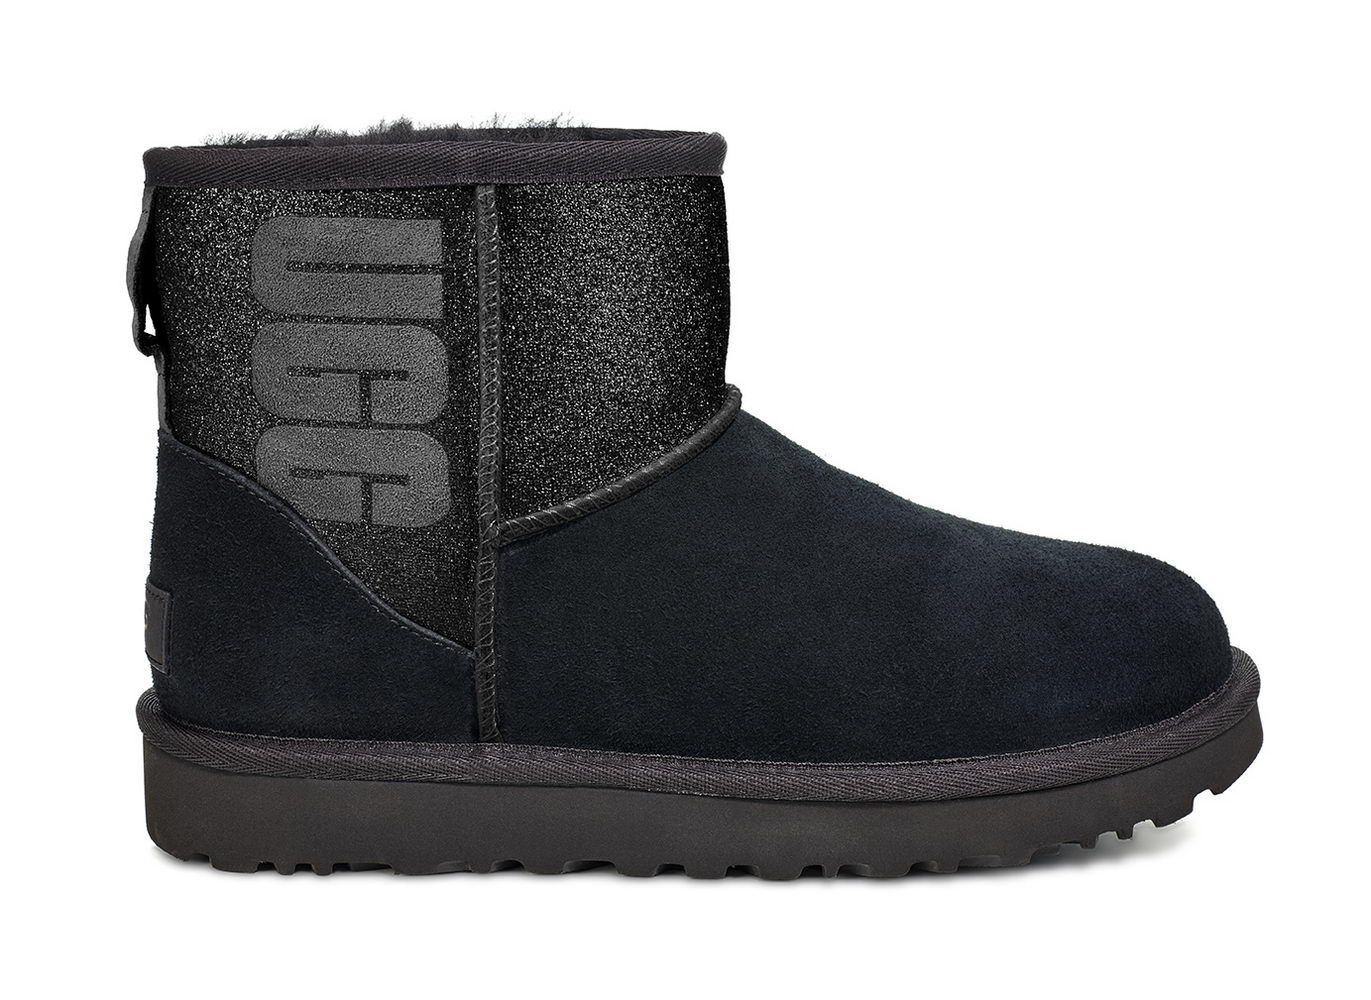 1098452_Classic Mini UGG Sparkle_Black PVP 189__resize